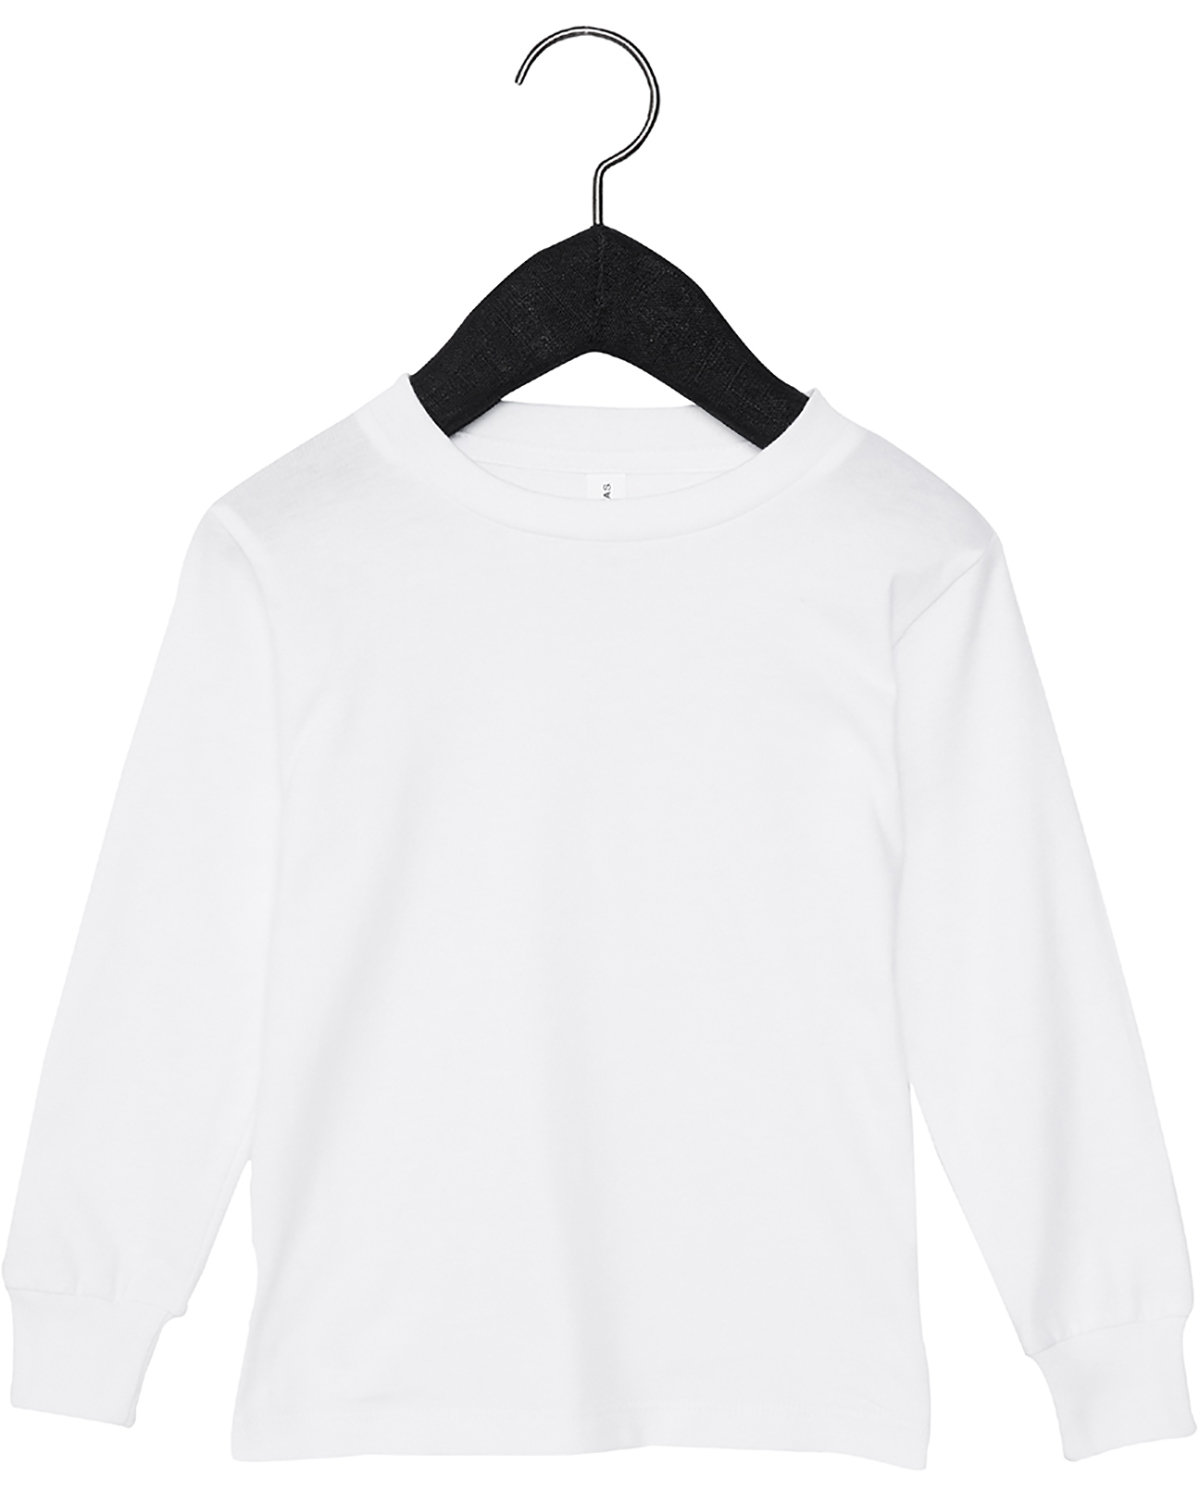 Bella + Canvas Youth Toddler Jersey Long Sleeve T-Shirt WHITE